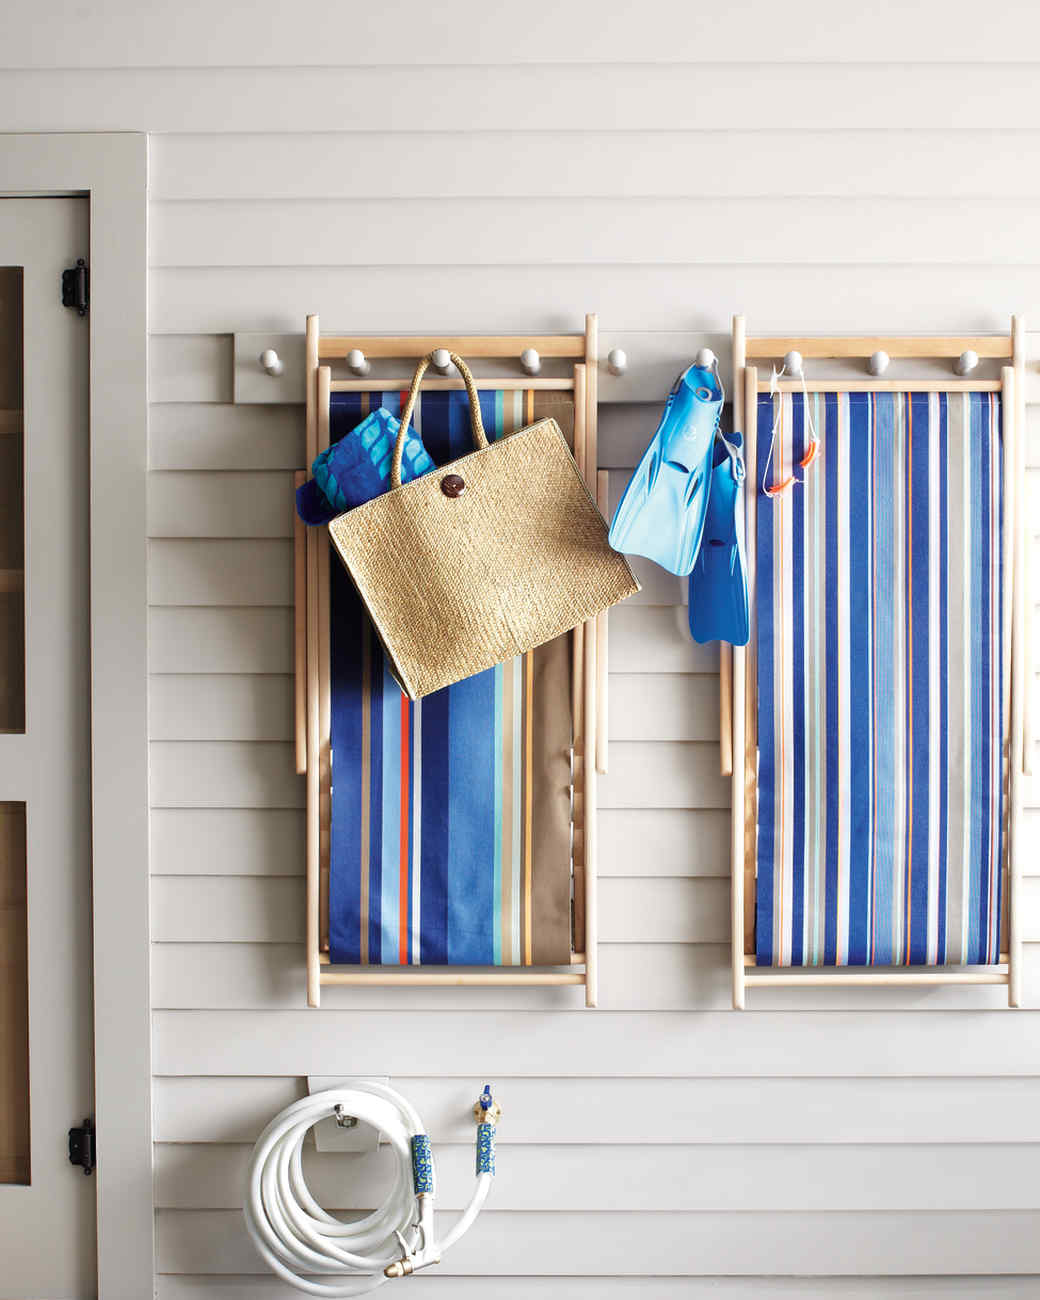 high tidy: beach house organizing and decor ideas | martha stewart